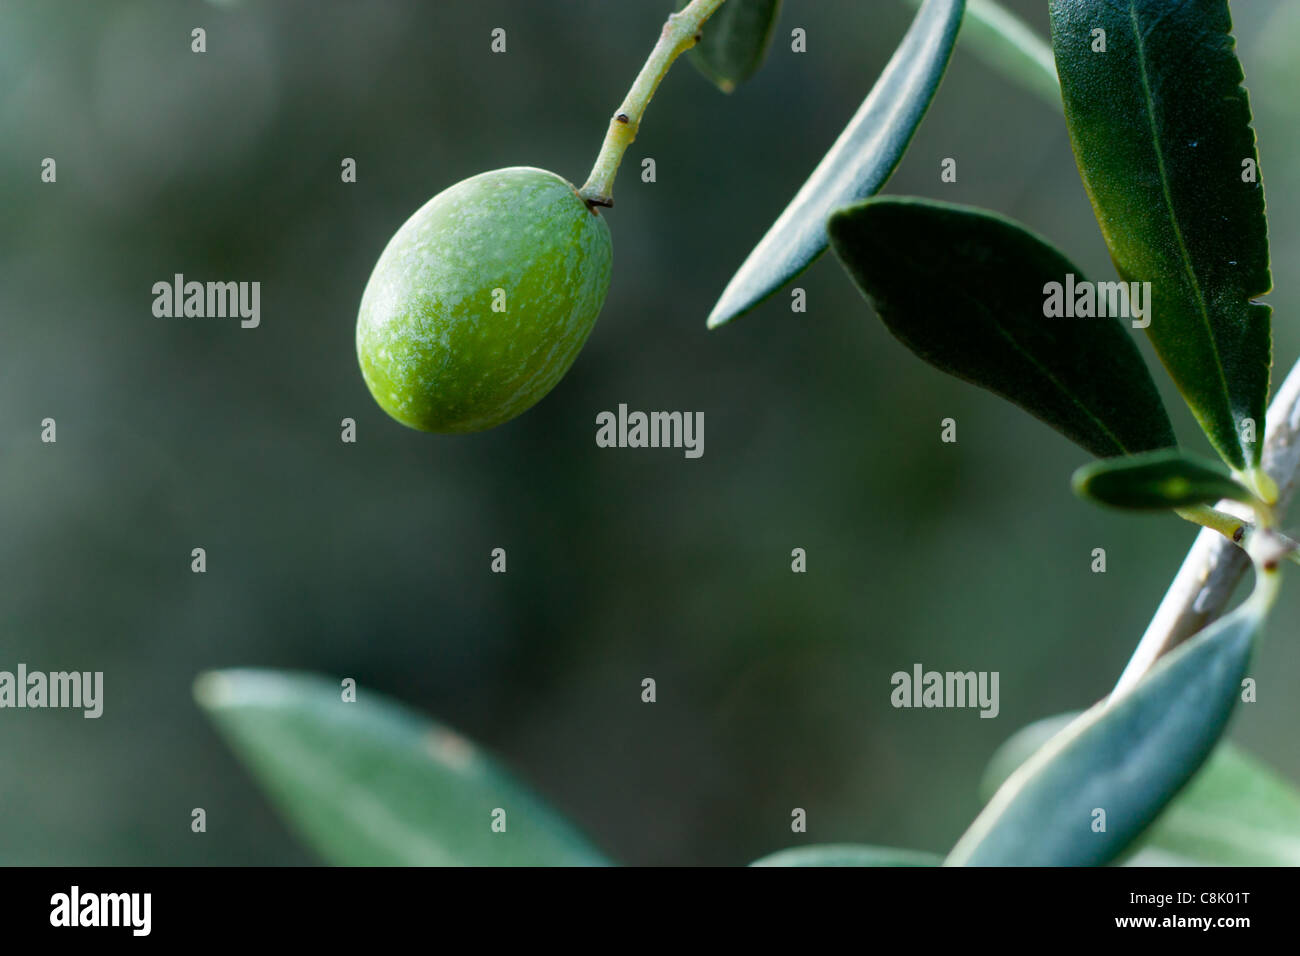 Green Olive on a Branch with Leaves - Stock Image